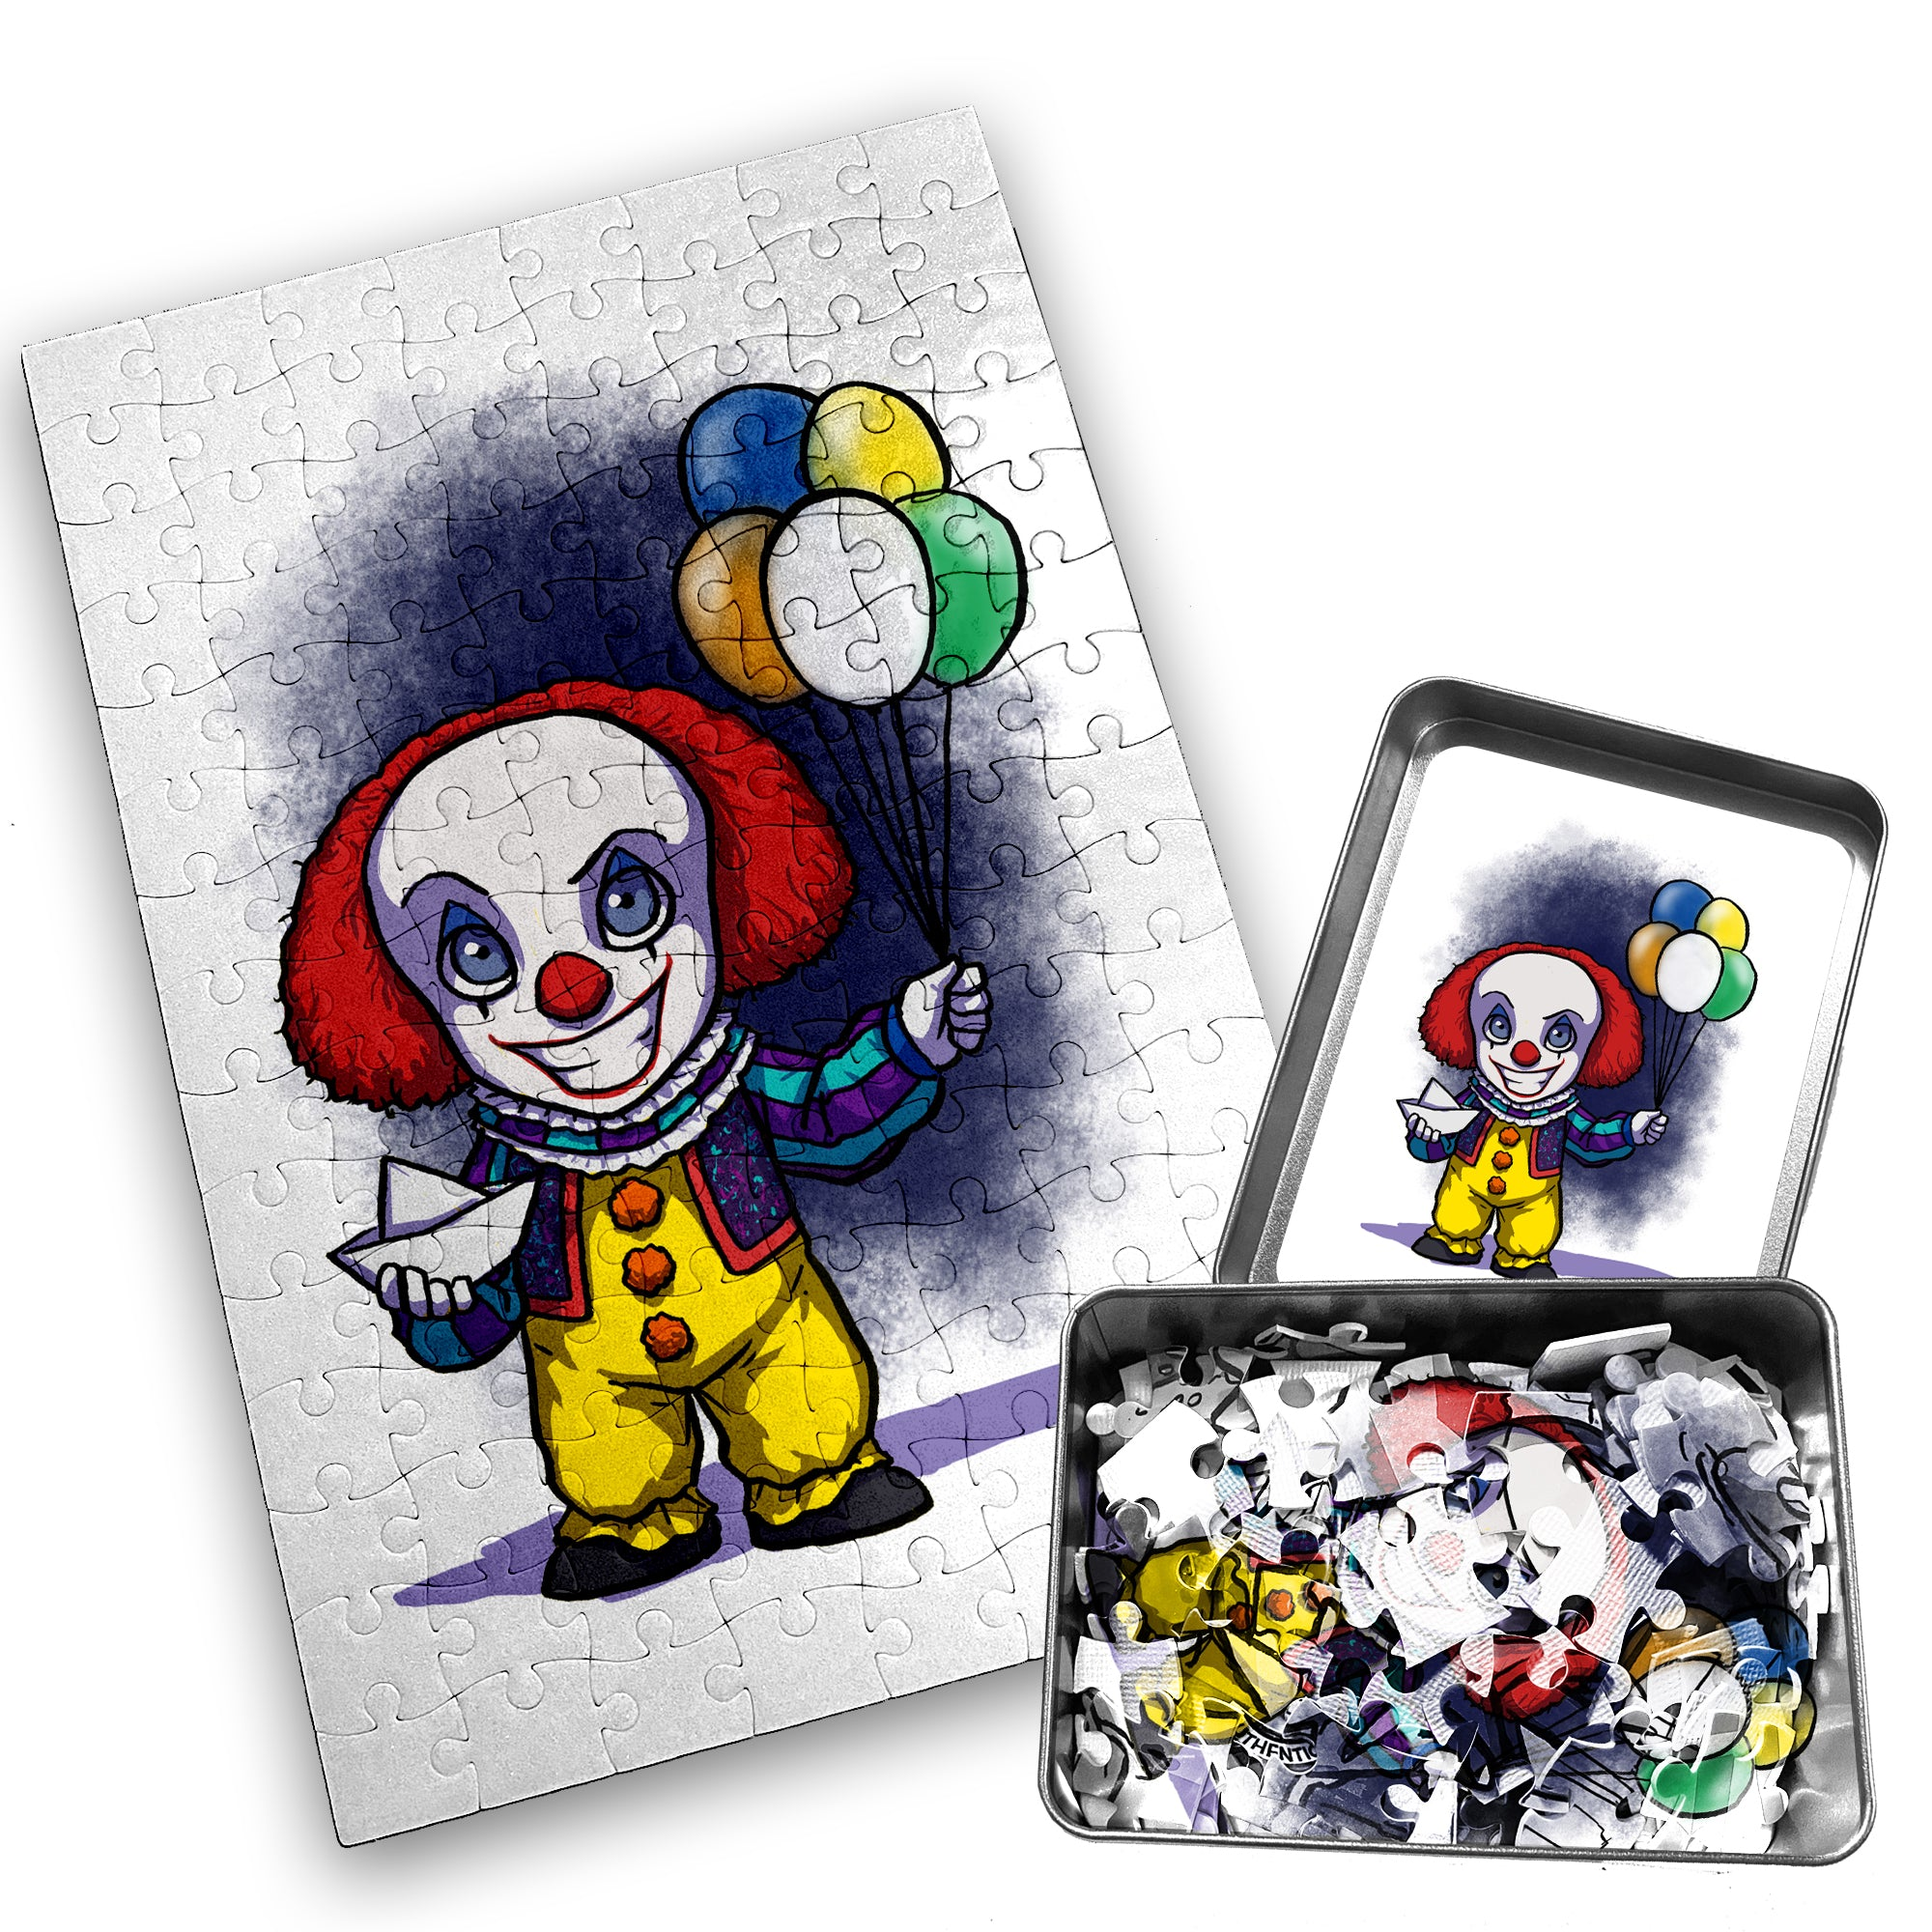 Pennywise - Character - 120 Piece Jigsaw Puzzle